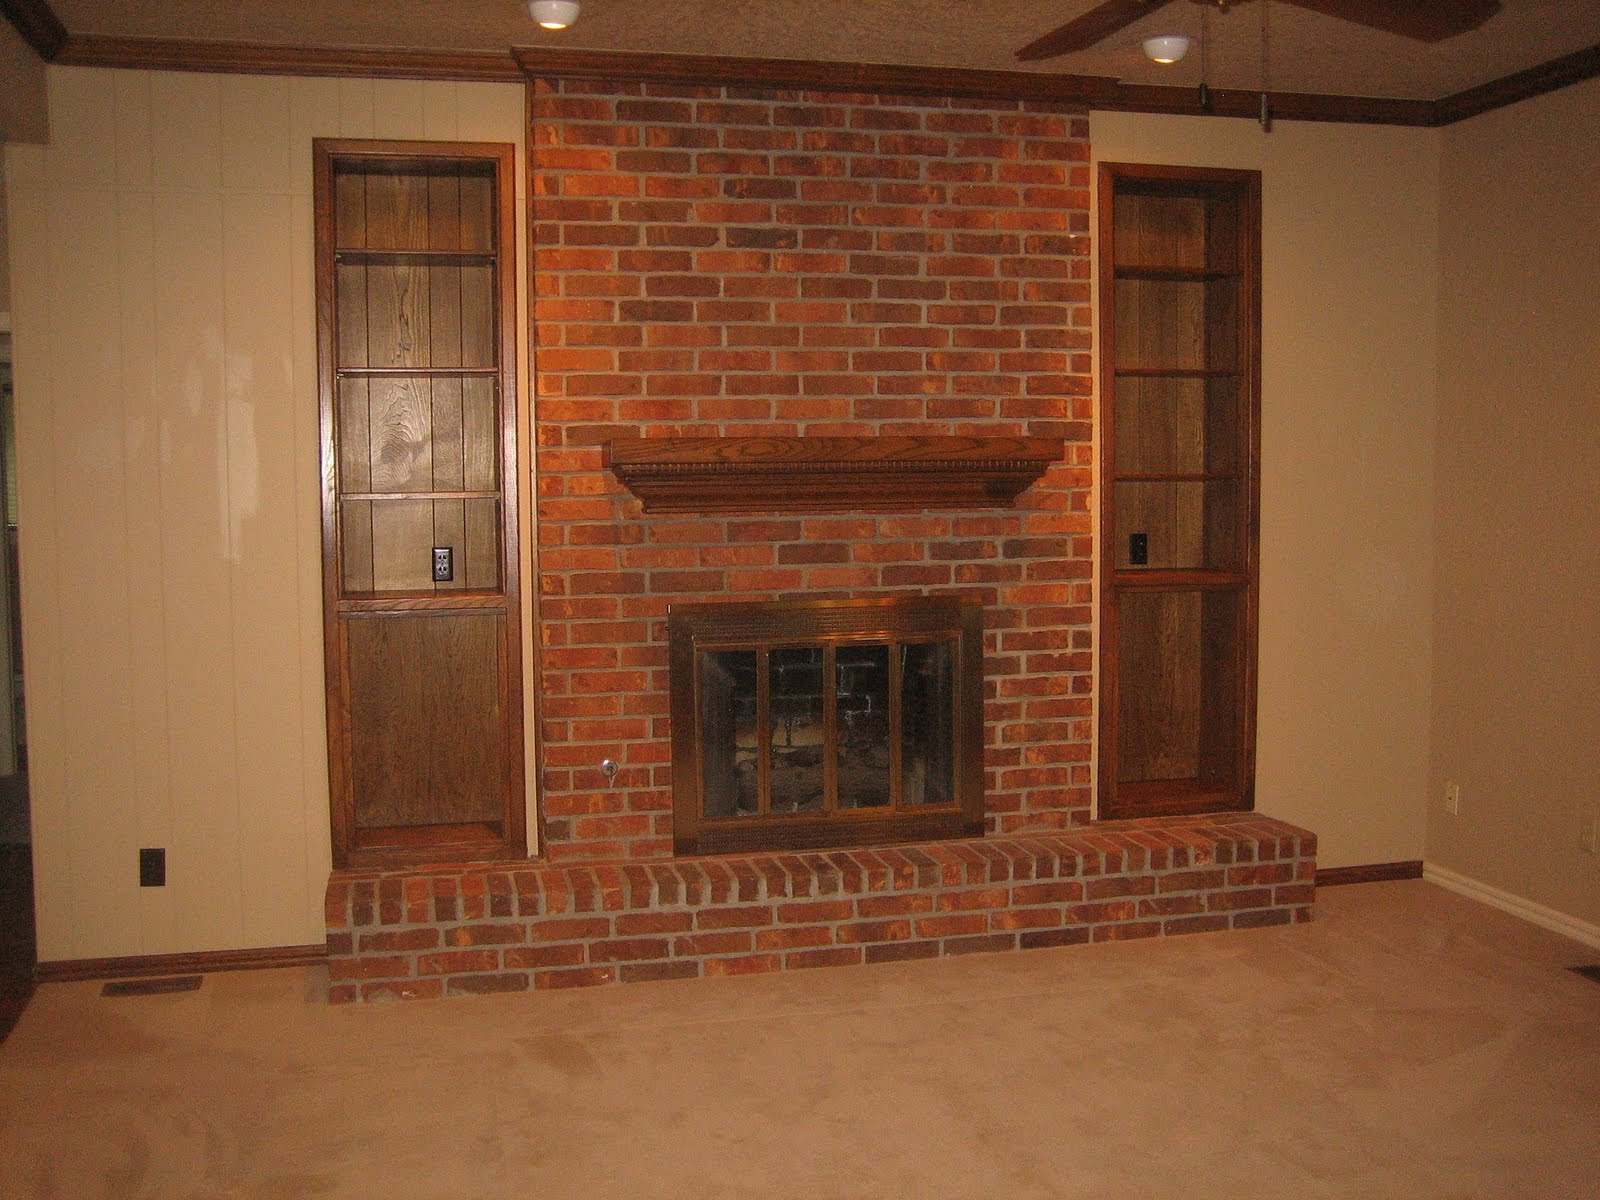 Painted Brick Fireplaces Painting Brick Fireplaces Brick New House Before & After: The Fireplace (again) | The